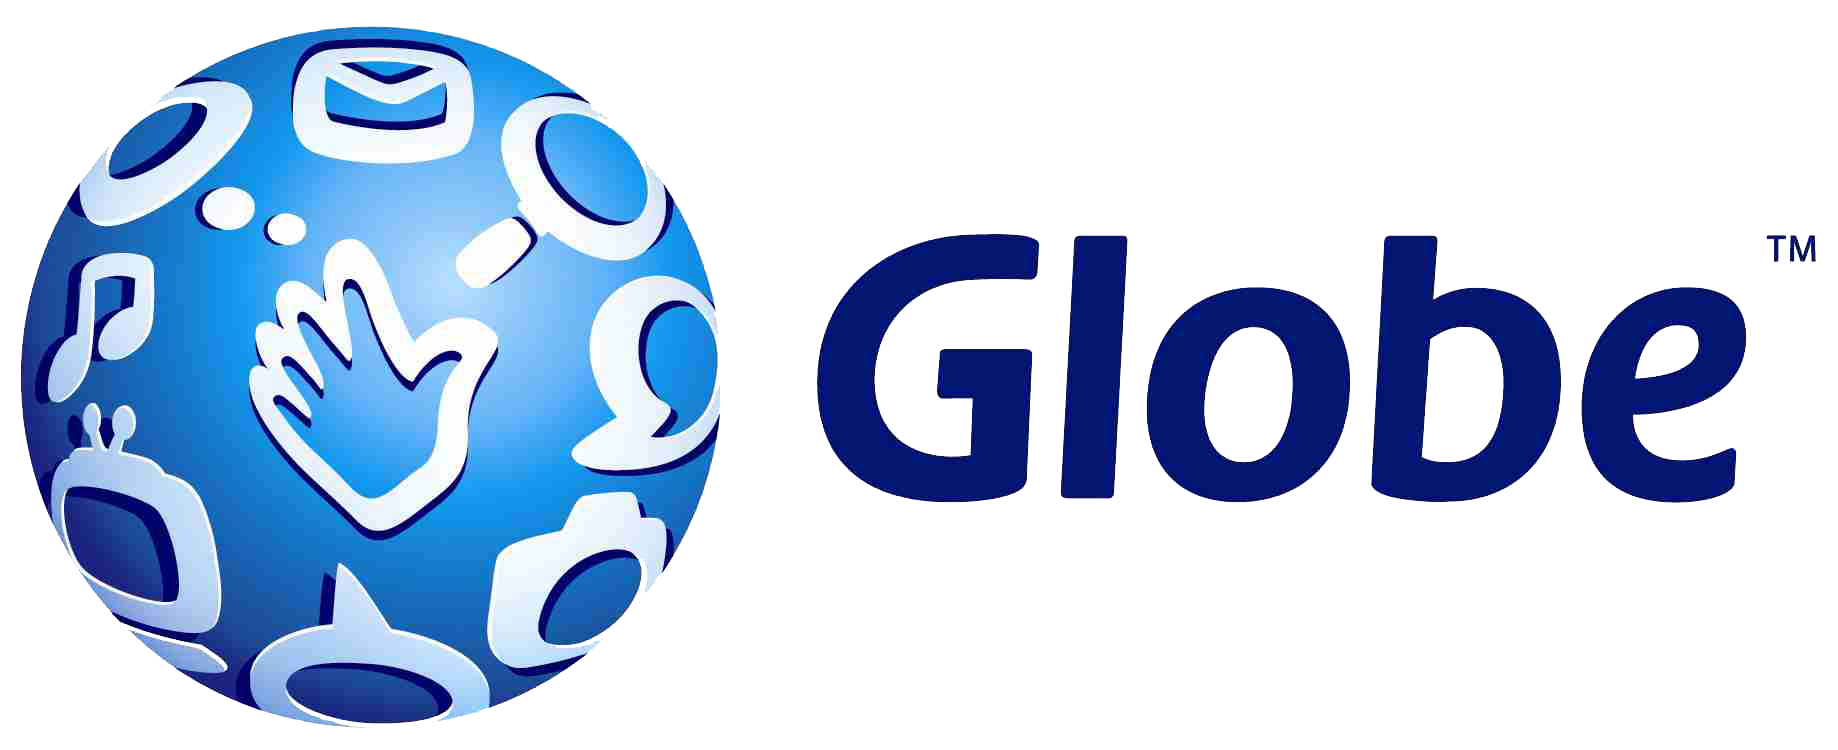 Globe Telecom Is Blocking Vpn Services Mark Ray Solar